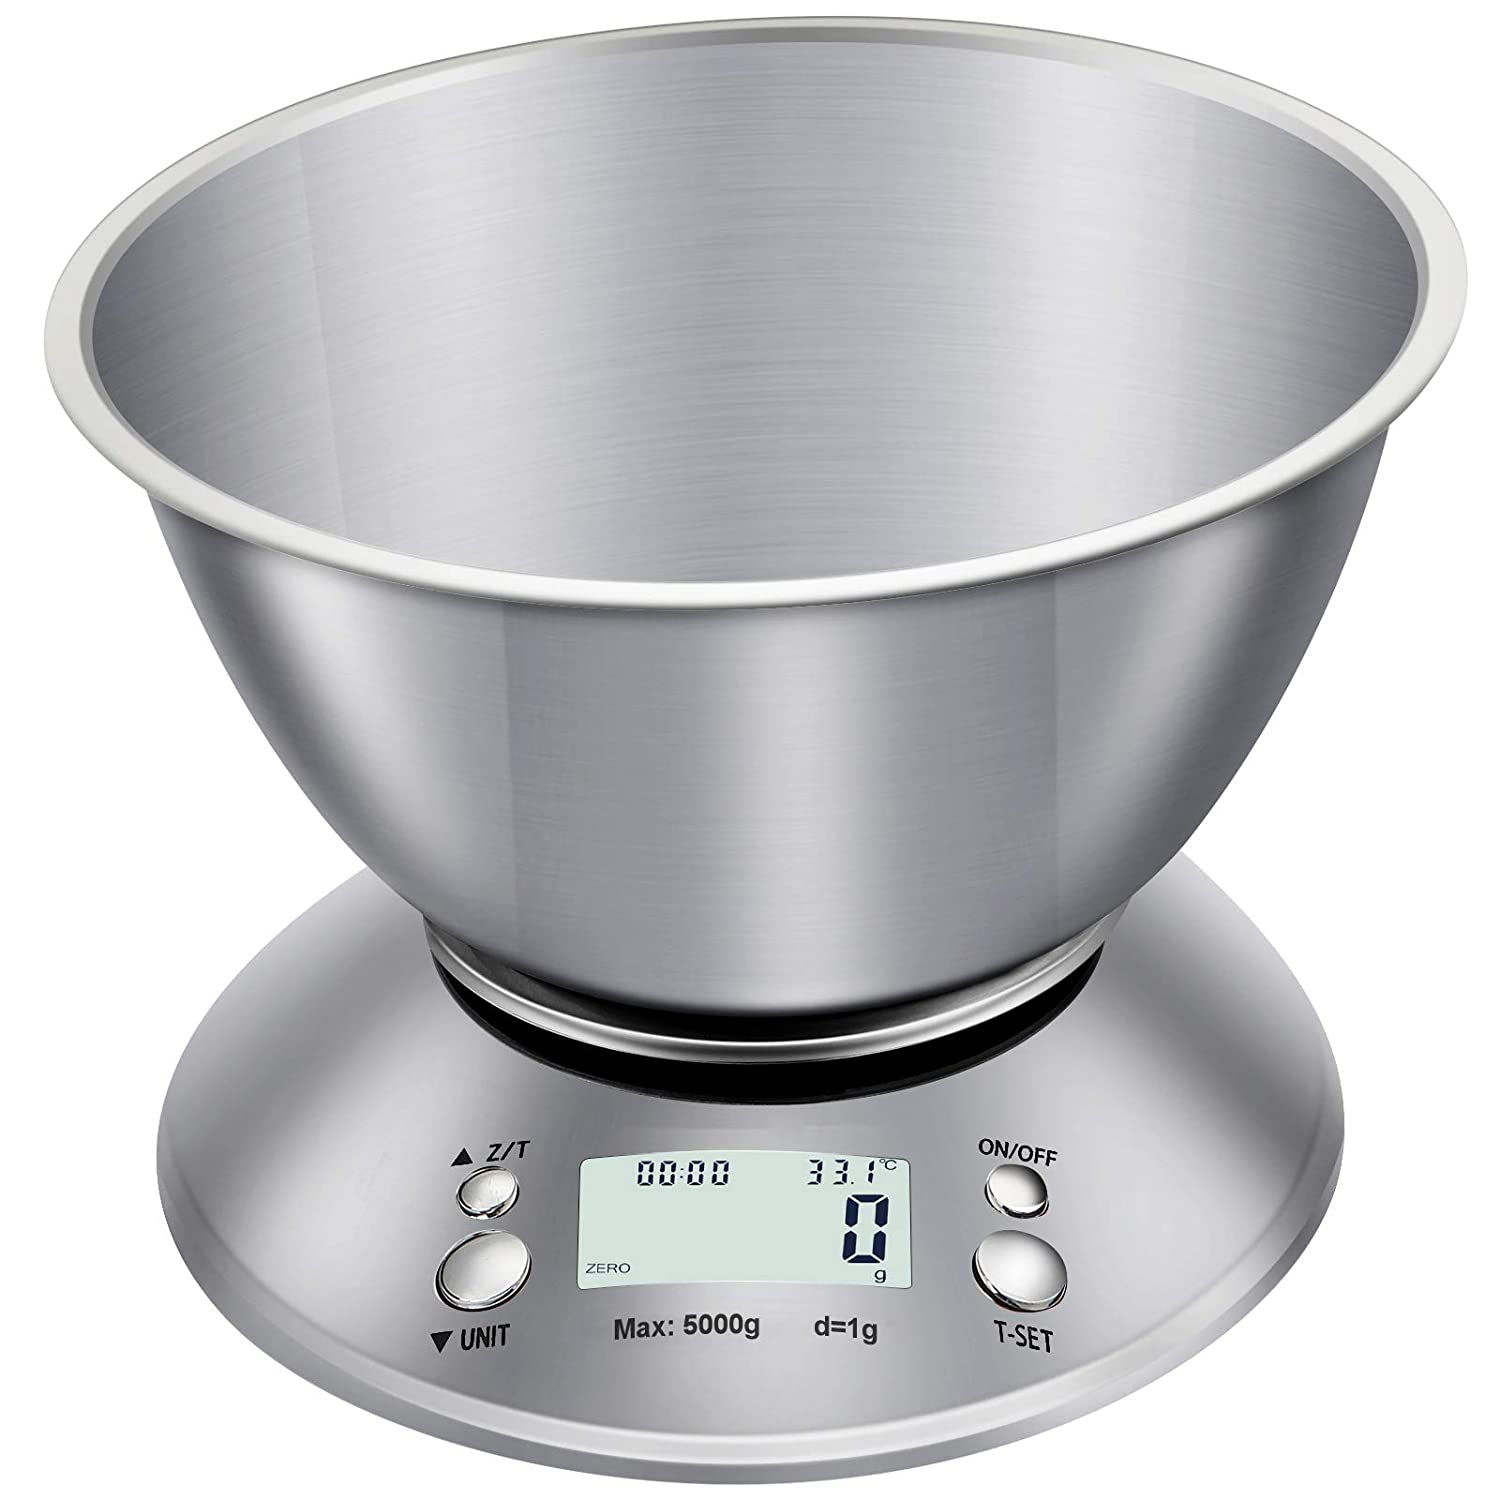 AQwzh Food Scale with Bowl, Digital Kitchen Weight for Cooking,